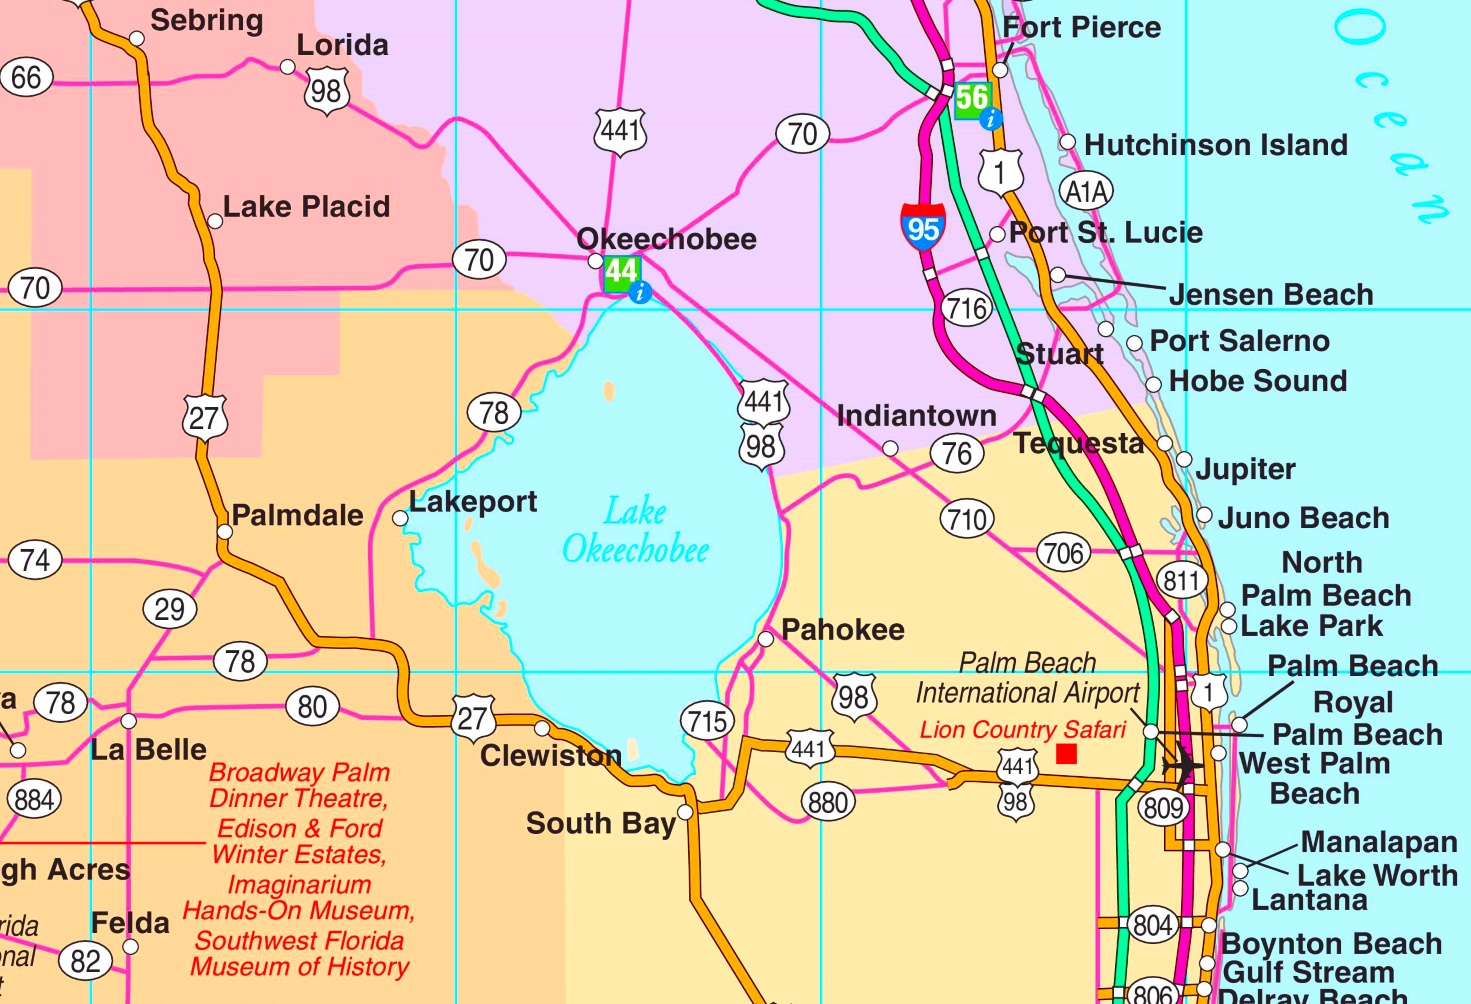 Lake Okeechobee Map Lake Okeechobee road map Lake Okeechobee Map